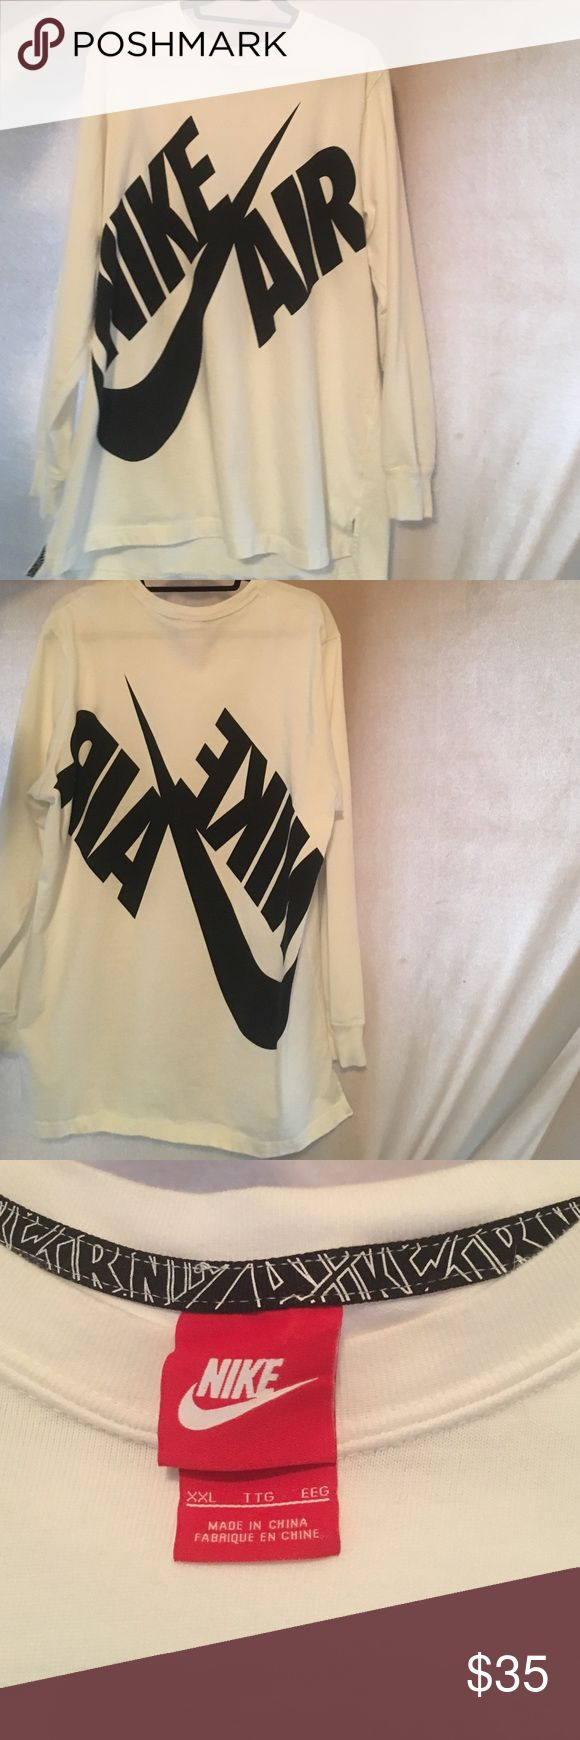 Nike Air Long Sleeved T-shirt White with large Nike Air logo on front and back. Detailed border around collar and side slits. Cuffed arms. Like new condition, very clean Nike Shirts Tees - Long Sleeve